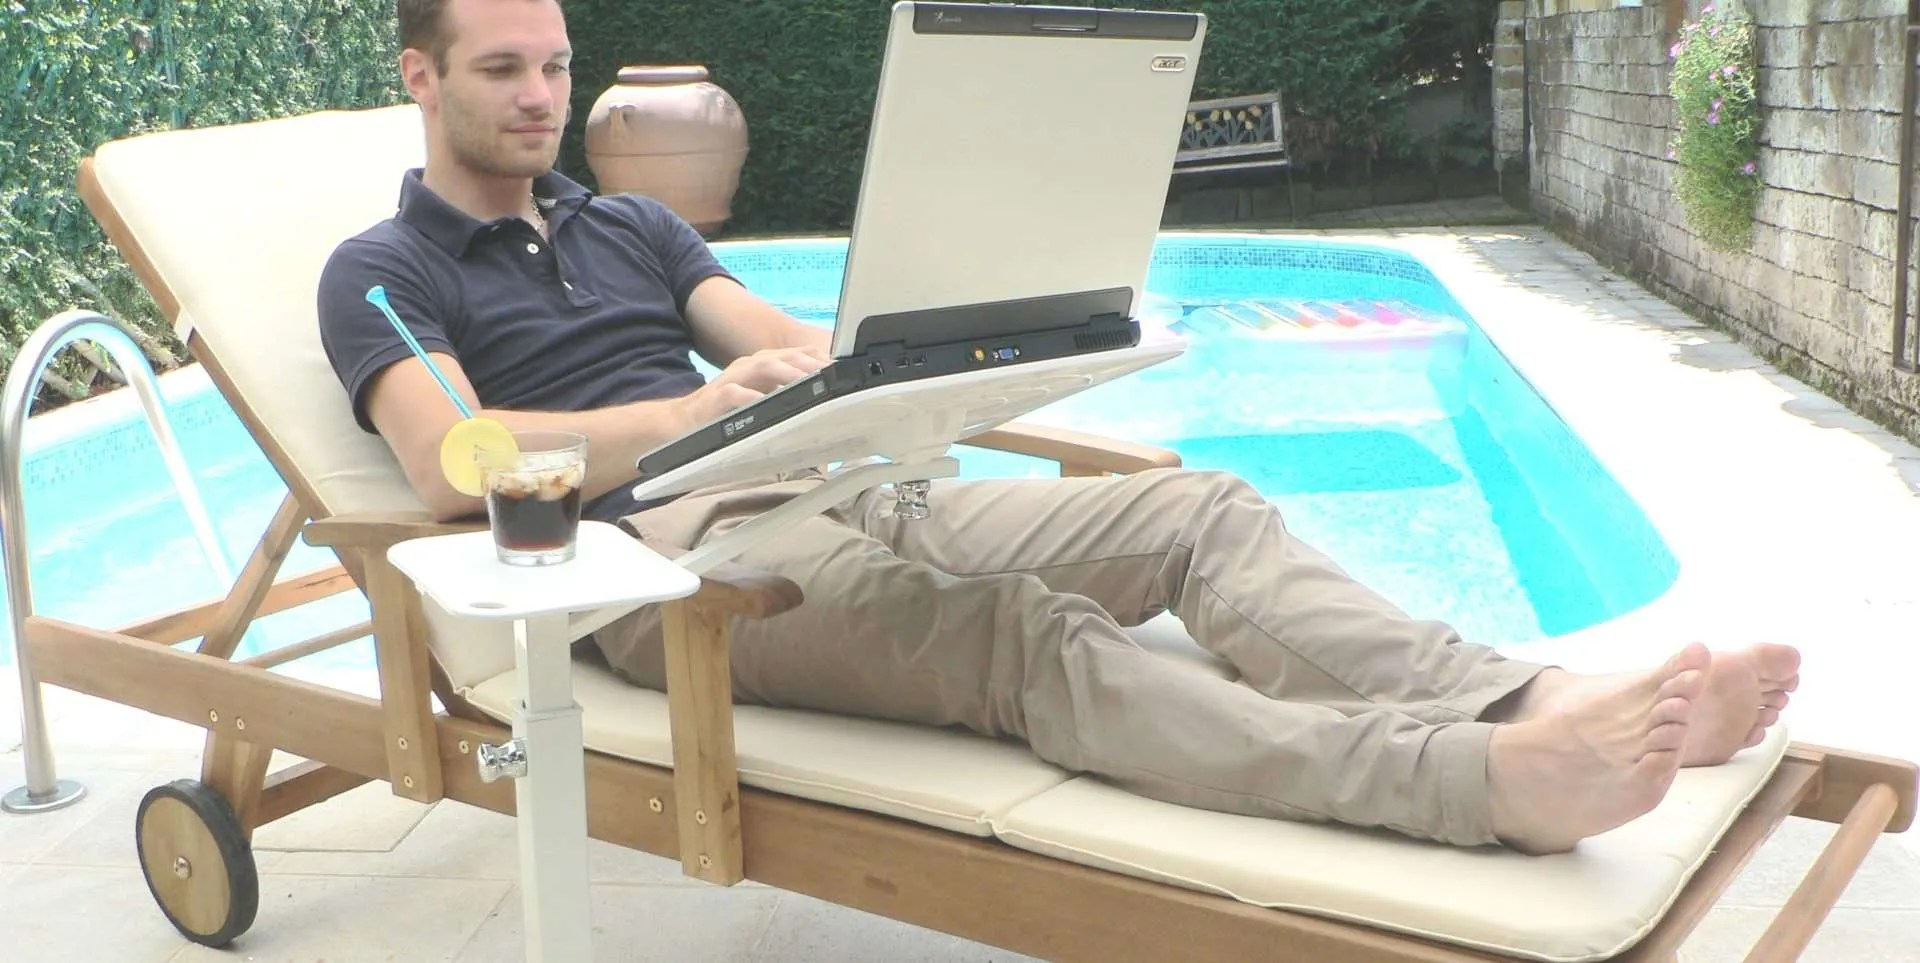 Use your laptopp outdoor, thanks to lounge-tek ergonomic supports you can find comfort and relaz moving your office on terrace or garden